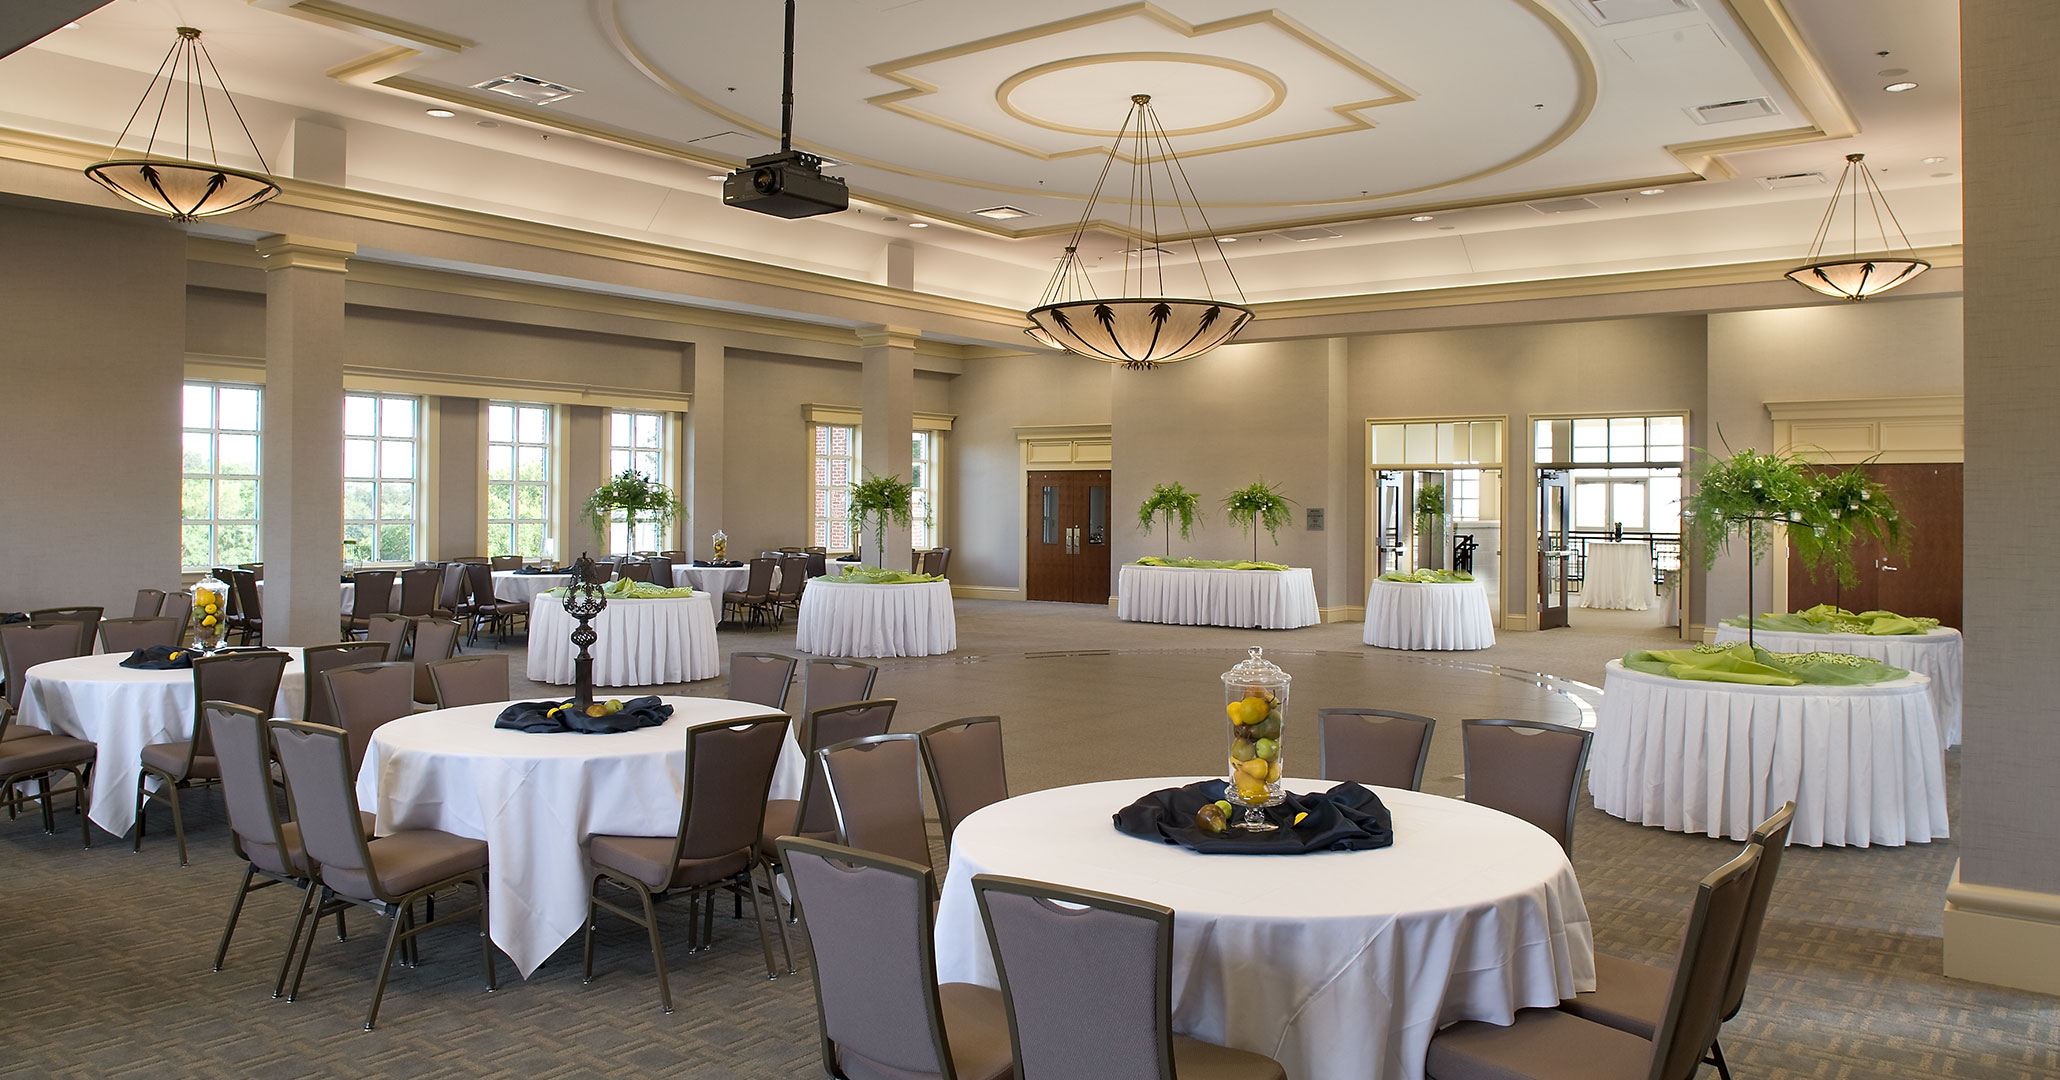 North Augusta Municipal Center hired Boudreaux architects to design wedding venue spaces.